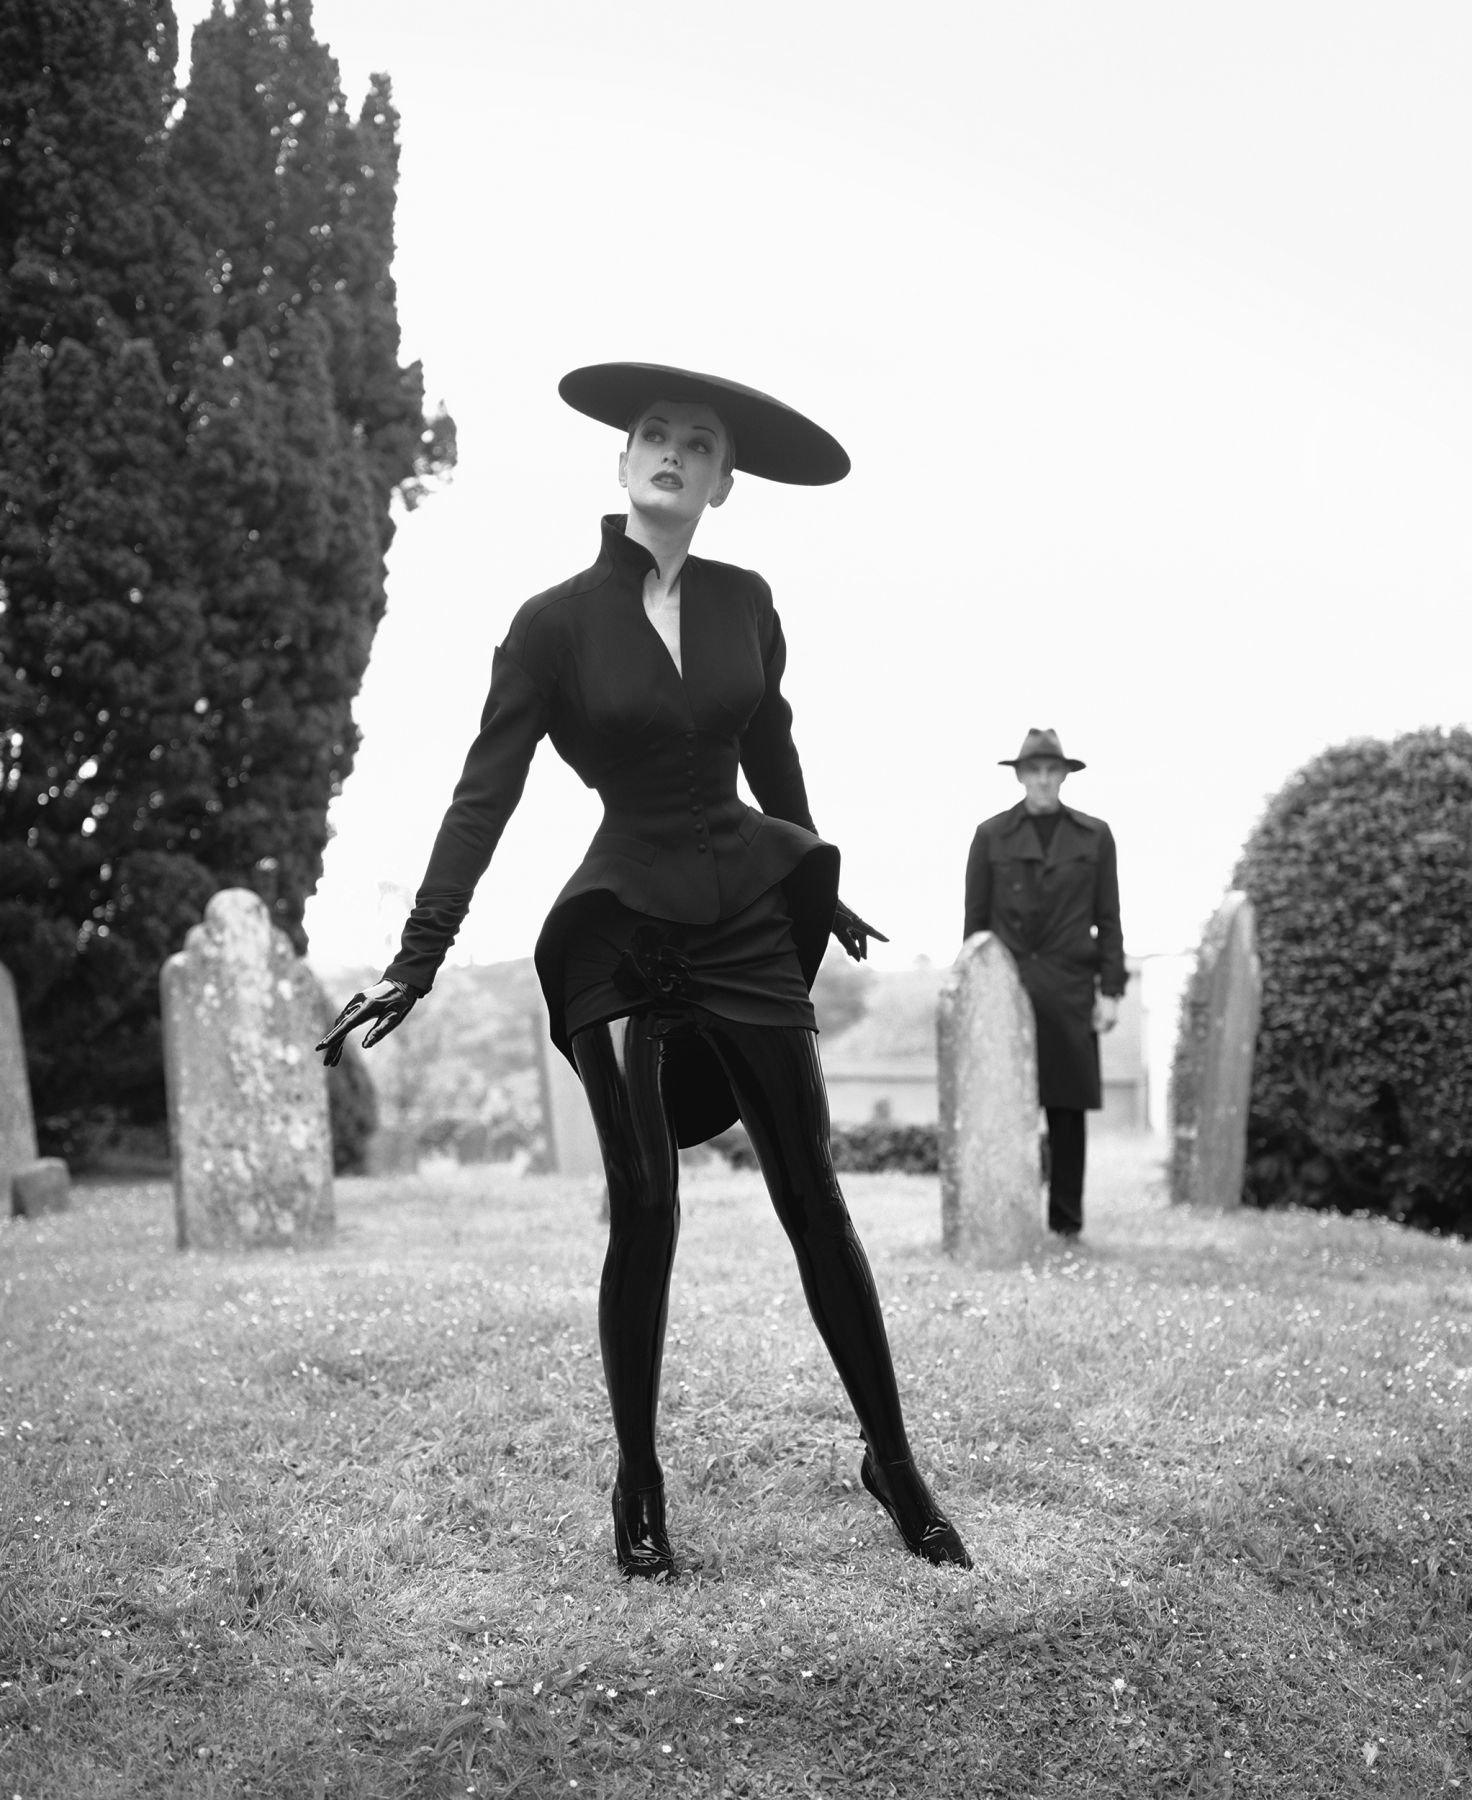 Model Watched in Cemetery, England, 1995, Archival Pigment Print